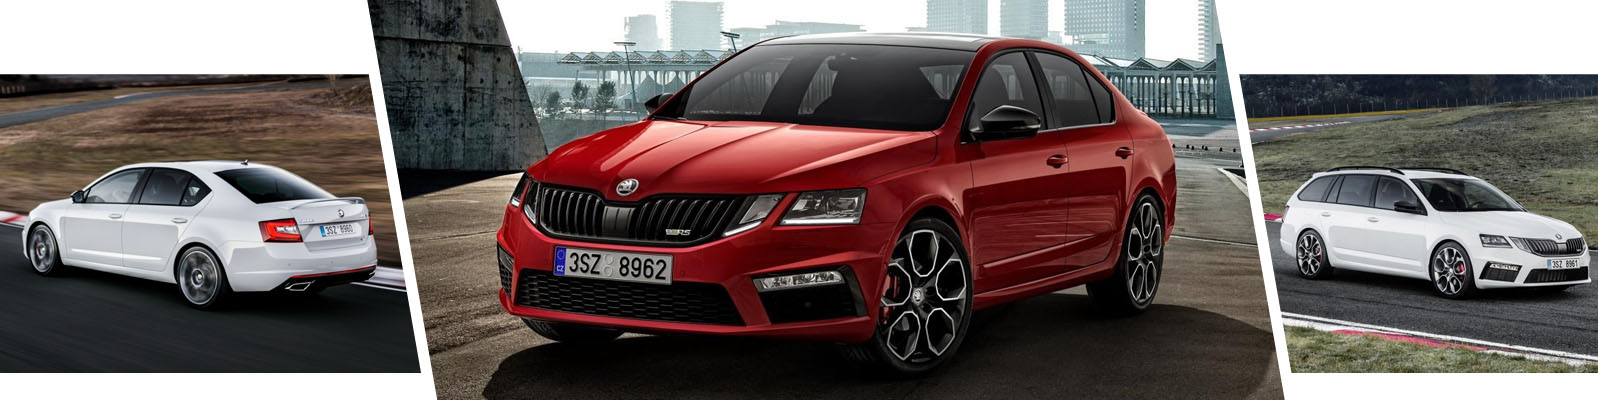 The thrilling SKODA vRS Octavia range includes the new vRS245 From Bickerton ŠKODA, Sheffield, South Yorkshire.